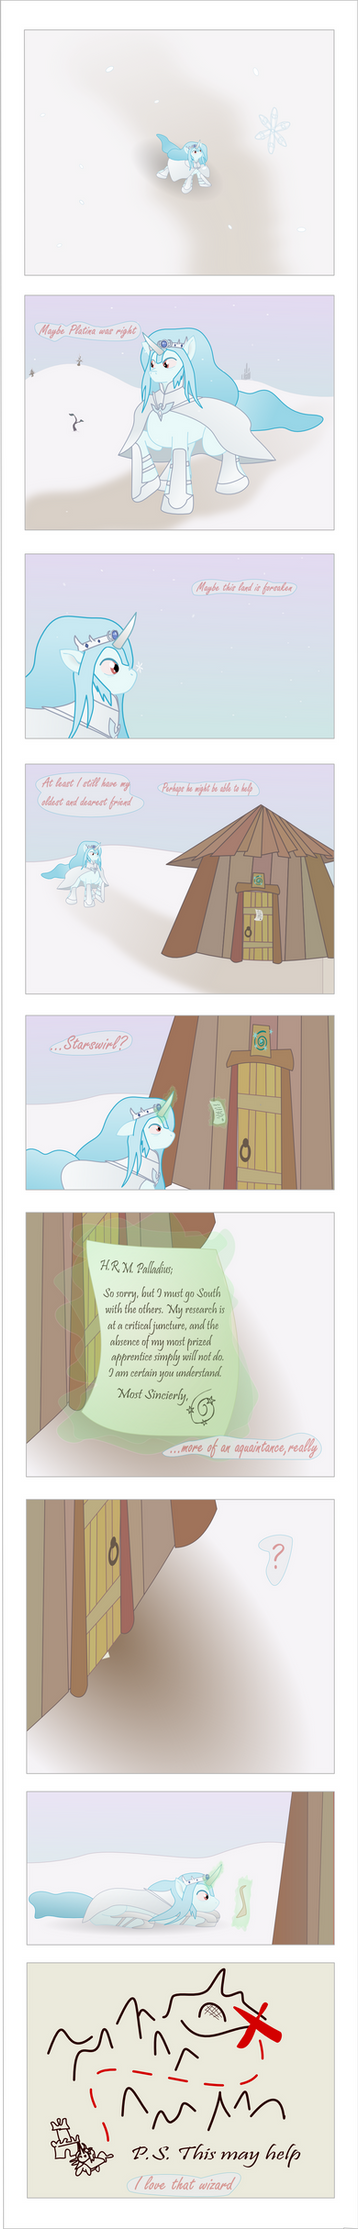 Heart of Crystal p2 by TotallyAnAlicornGuys